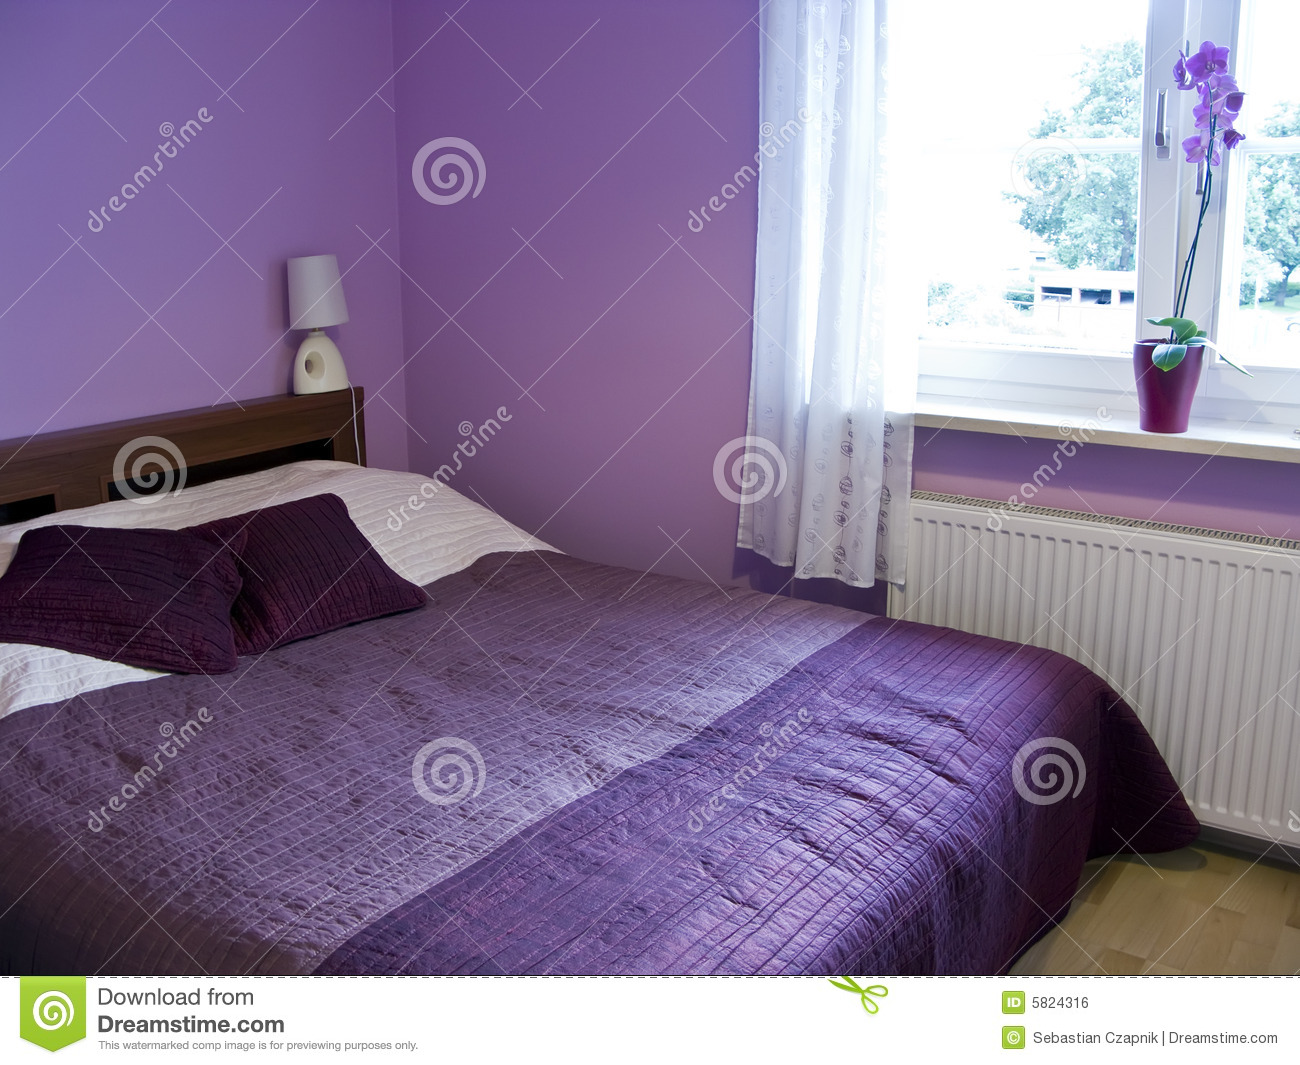 Camera da letto viola fotografia stock. Immagine di bedroom - 5824316